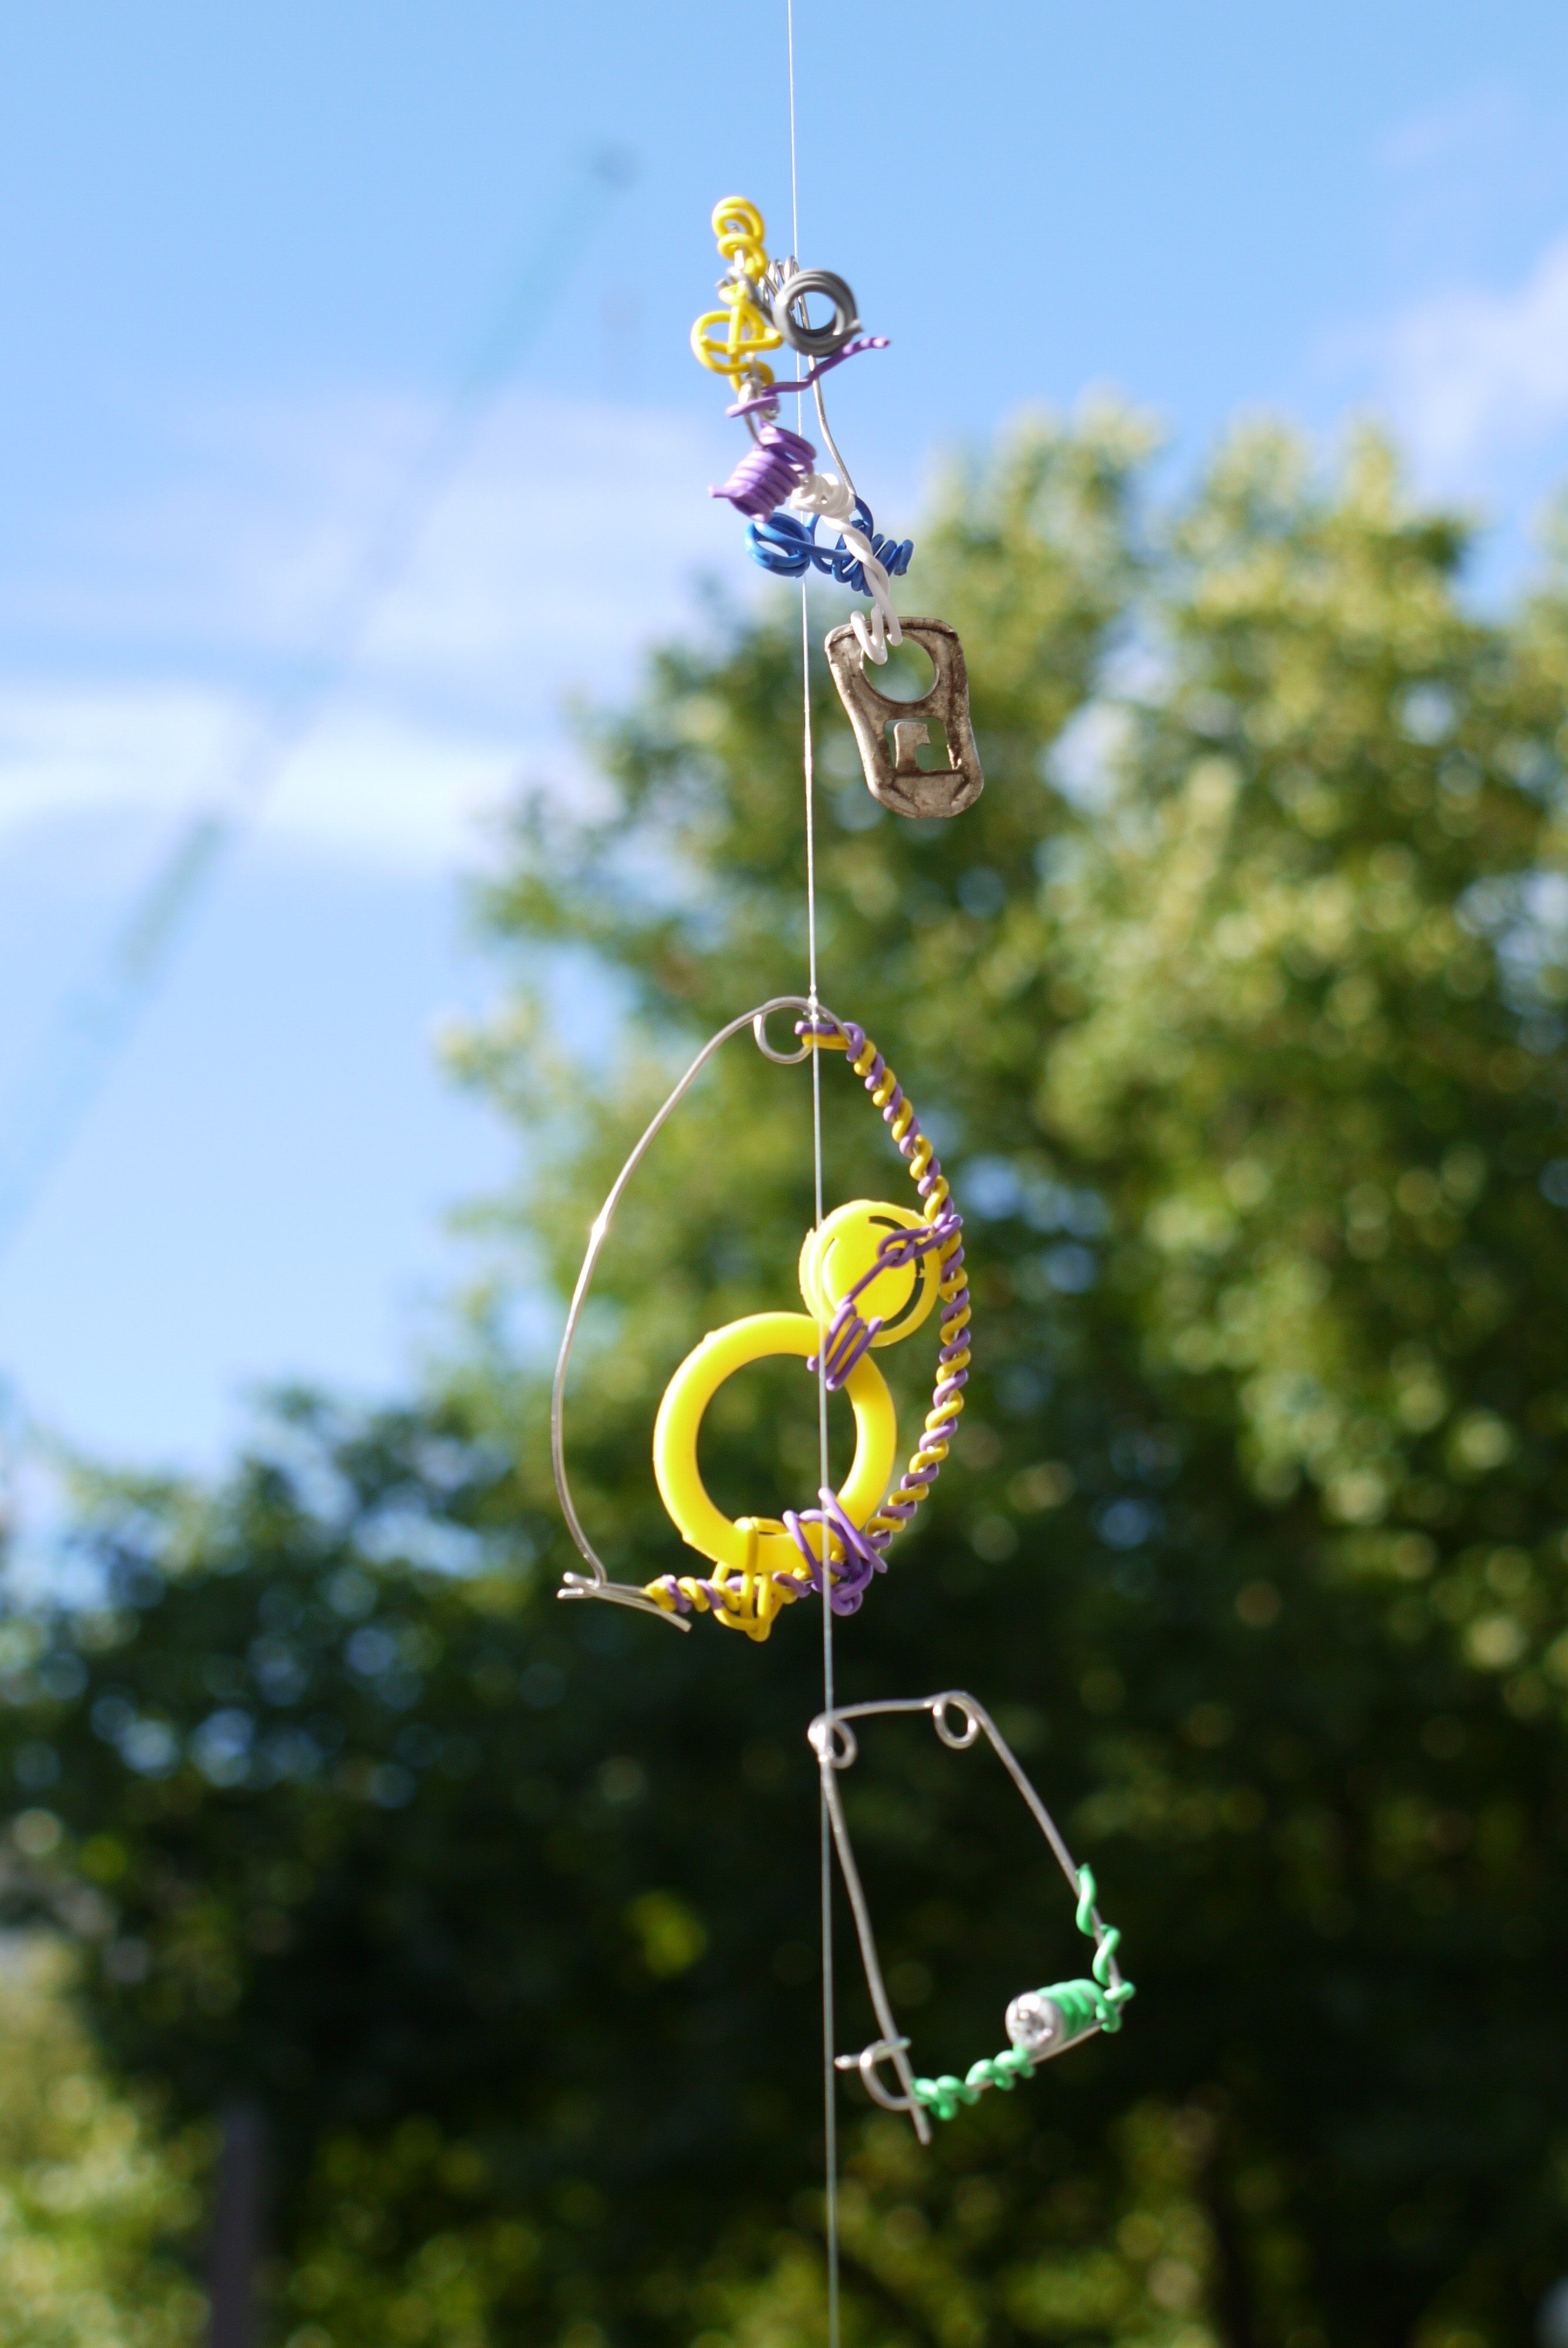 made from found objects such as rusted metals and twigs, with silver and colourful covered metal wire